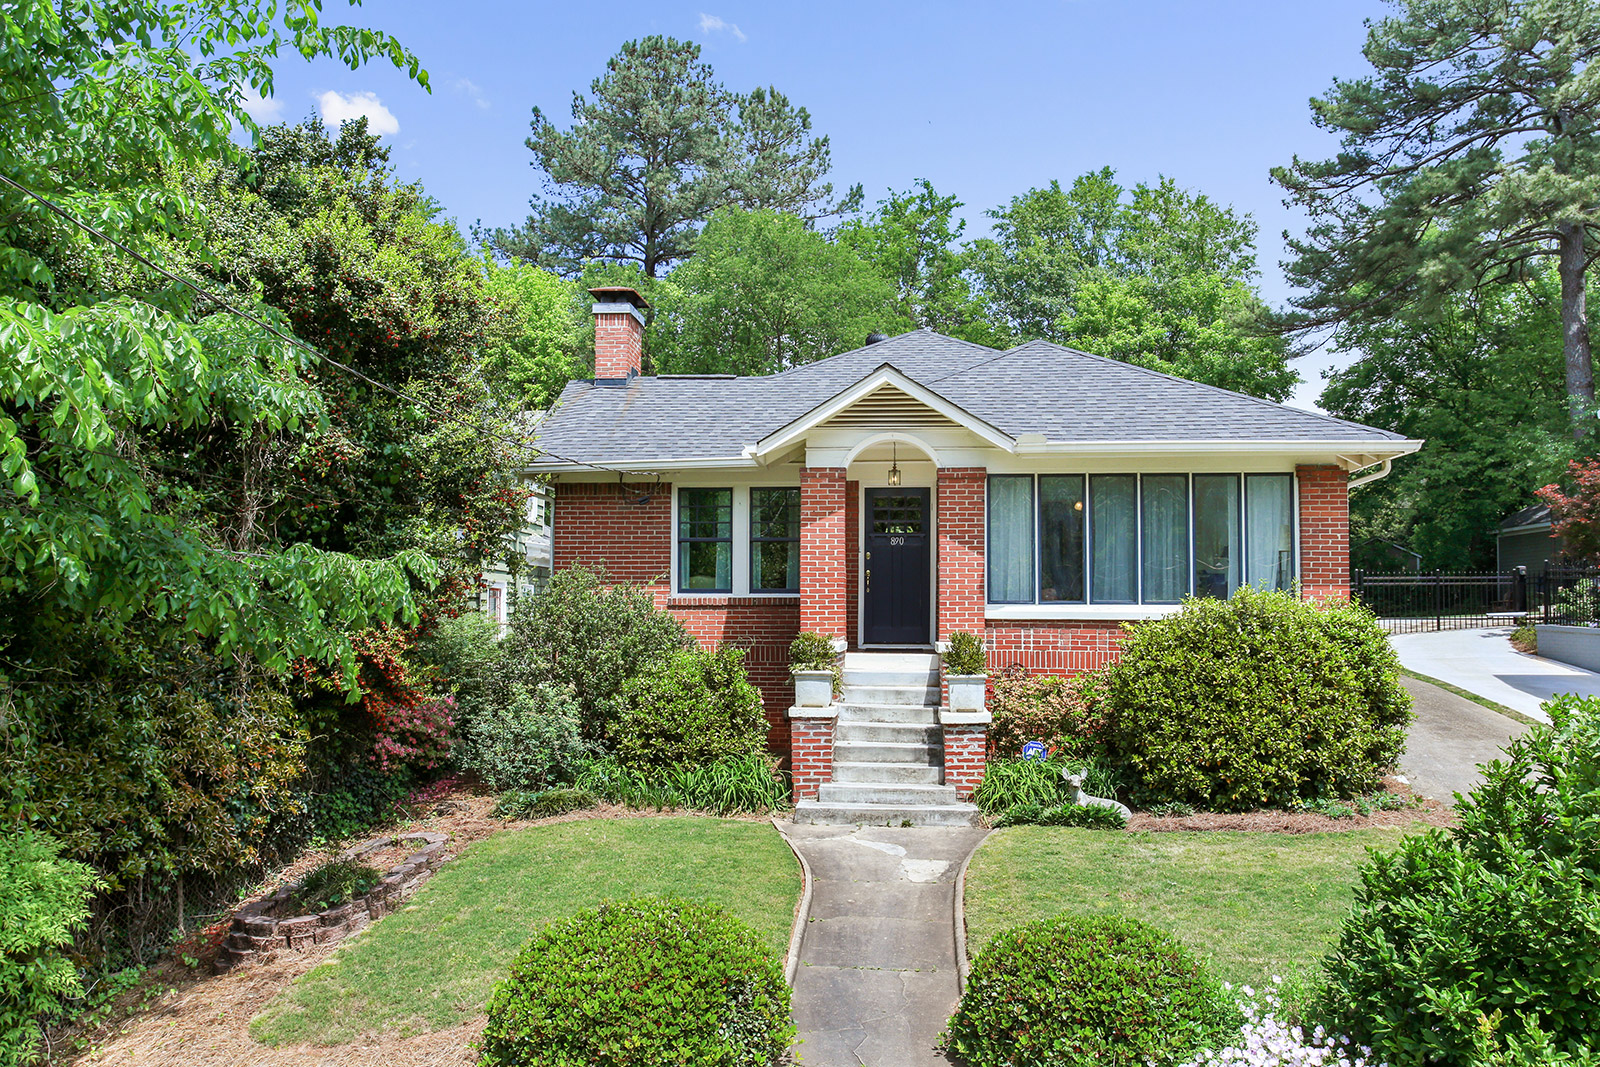 Single Family Home for Sale at Virginia Highland Charm in the Heart of the Neighborhood 890 Drewry Street NE Atlanta, Georgia, 30306 United States